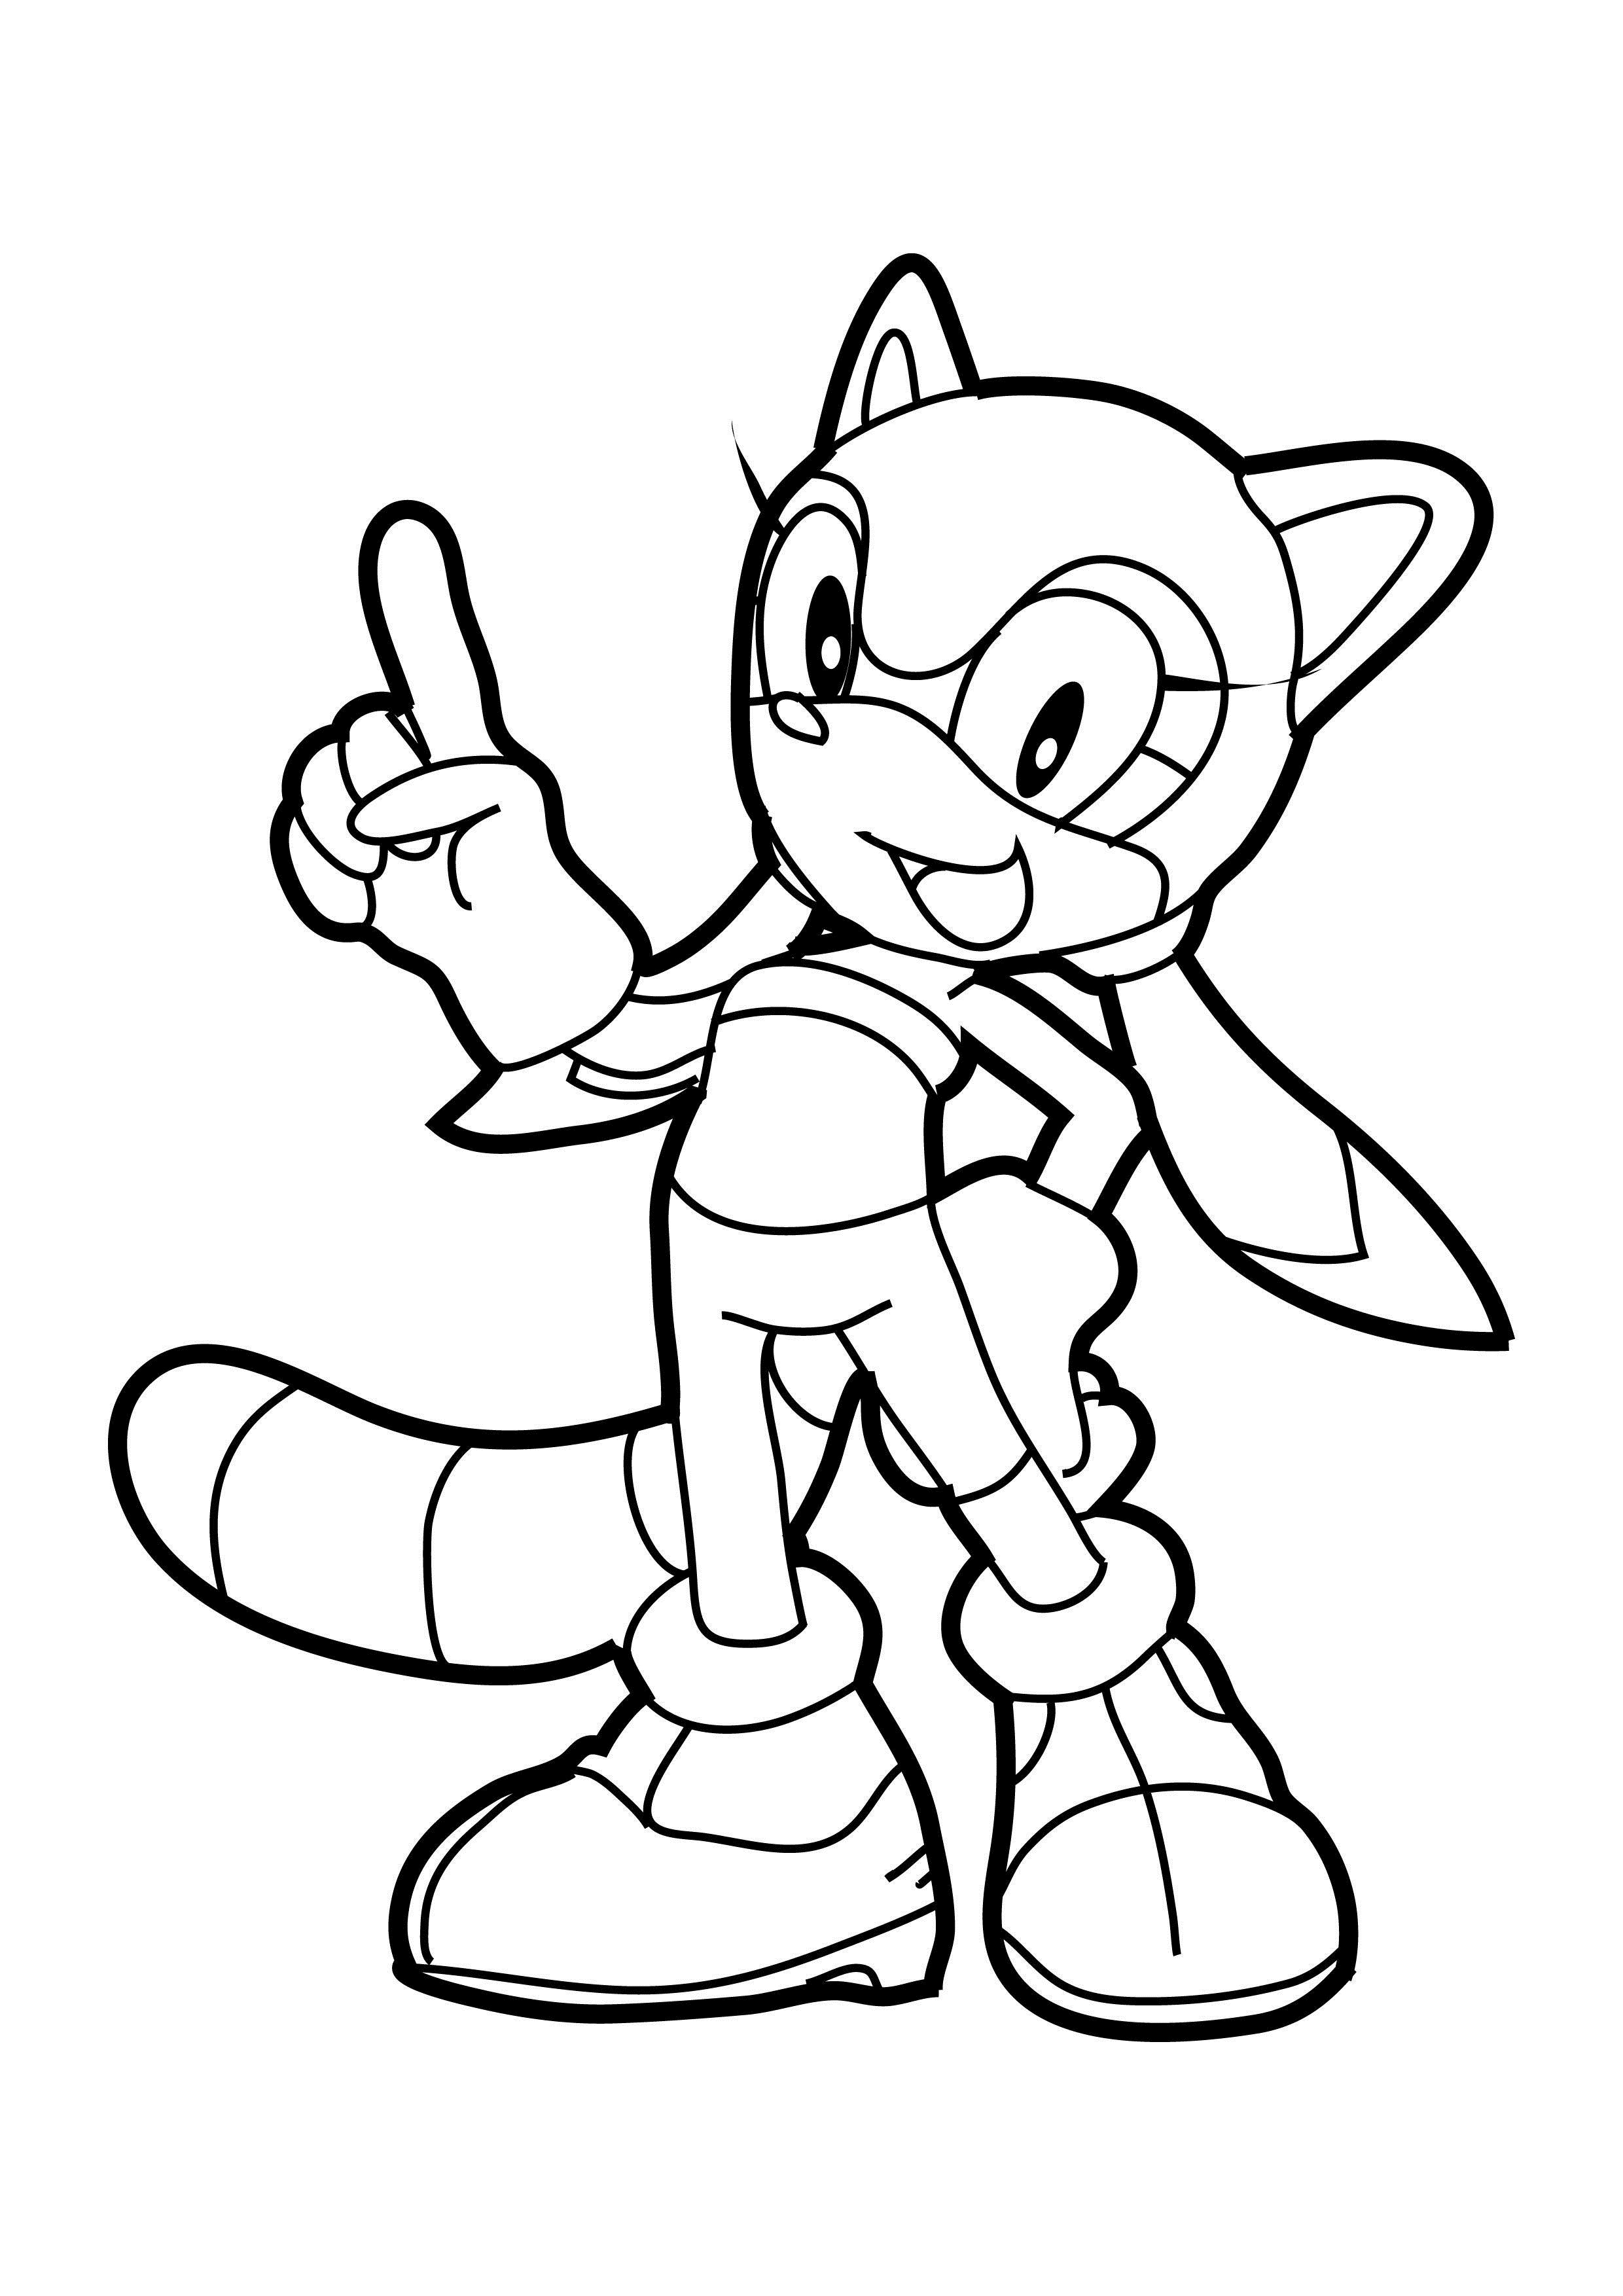 Sonic the Hedgehog Coloring Pages | 360ColoringPages